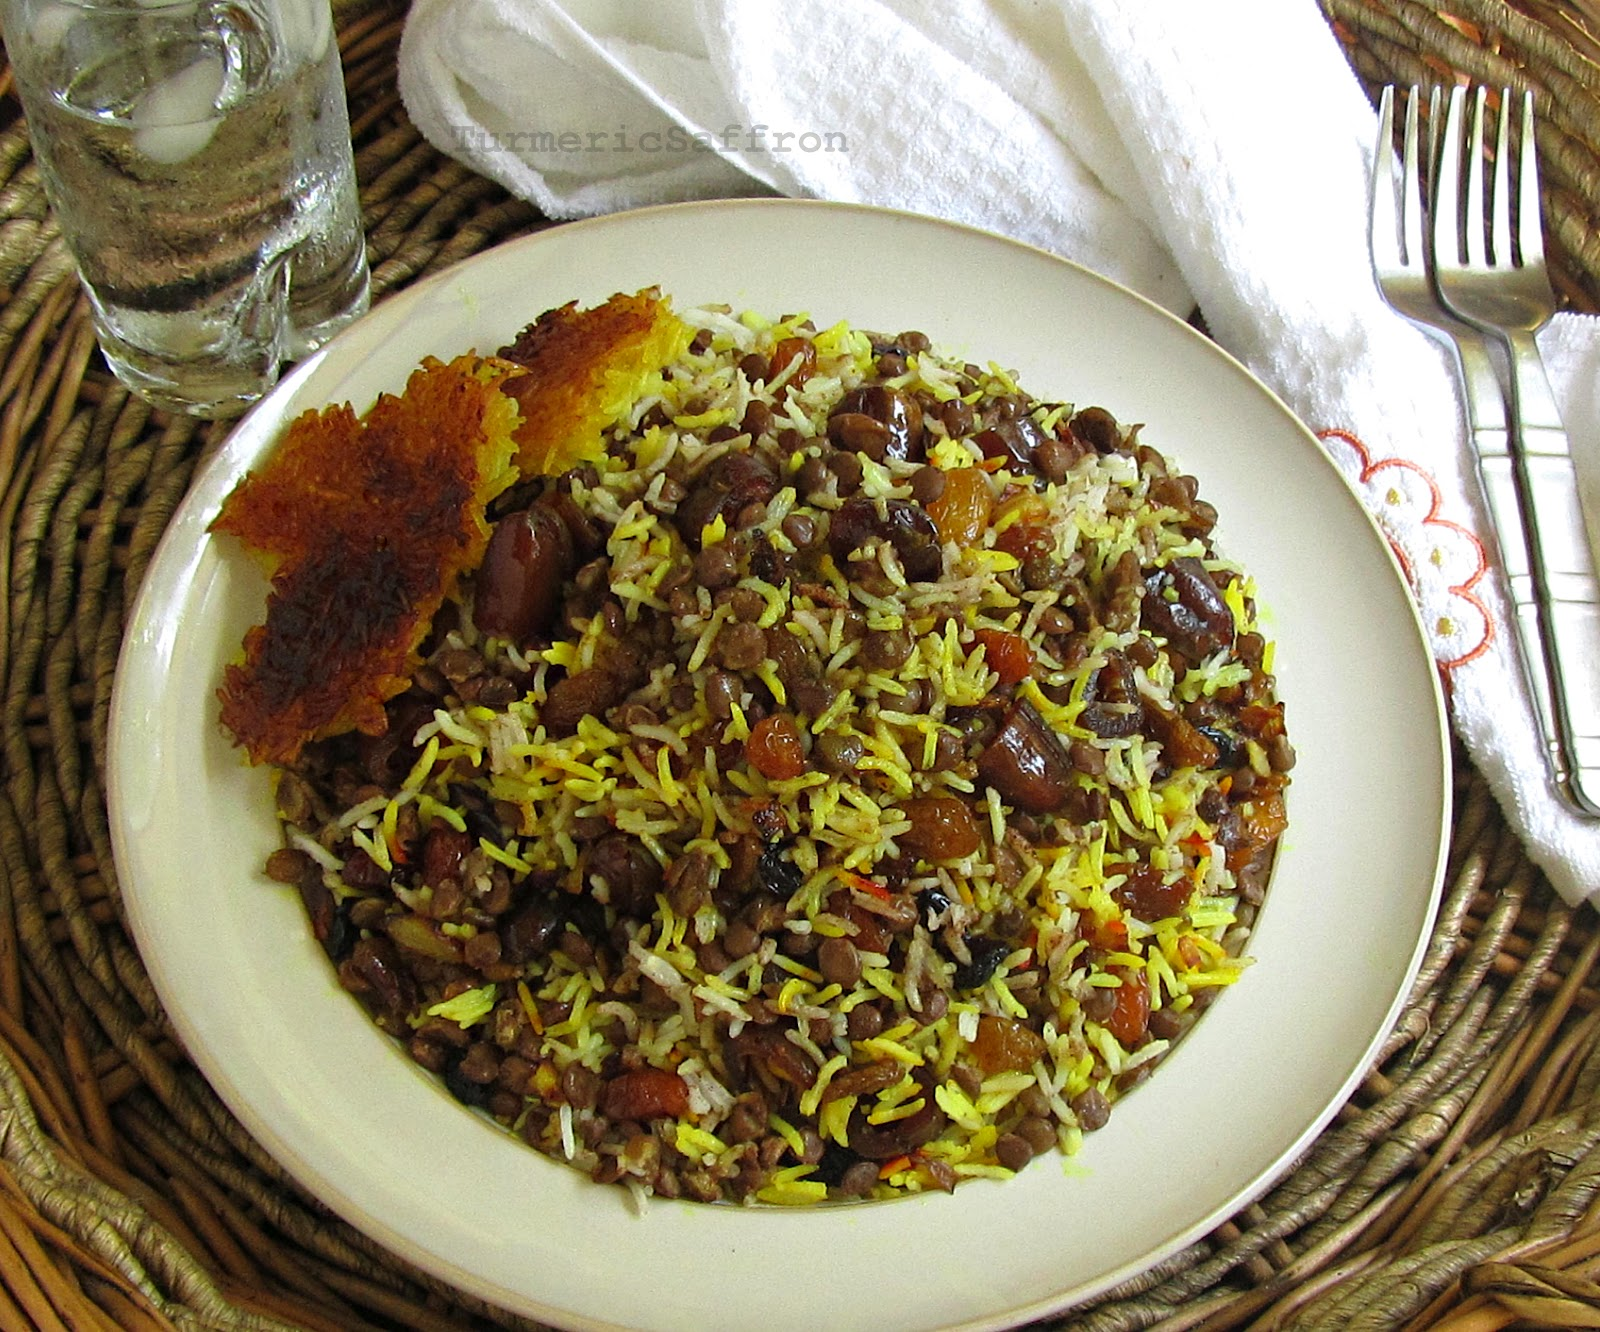 Turmeric saffron adas polow rice with lentils iranian rice with lentils forumfinder Gallery